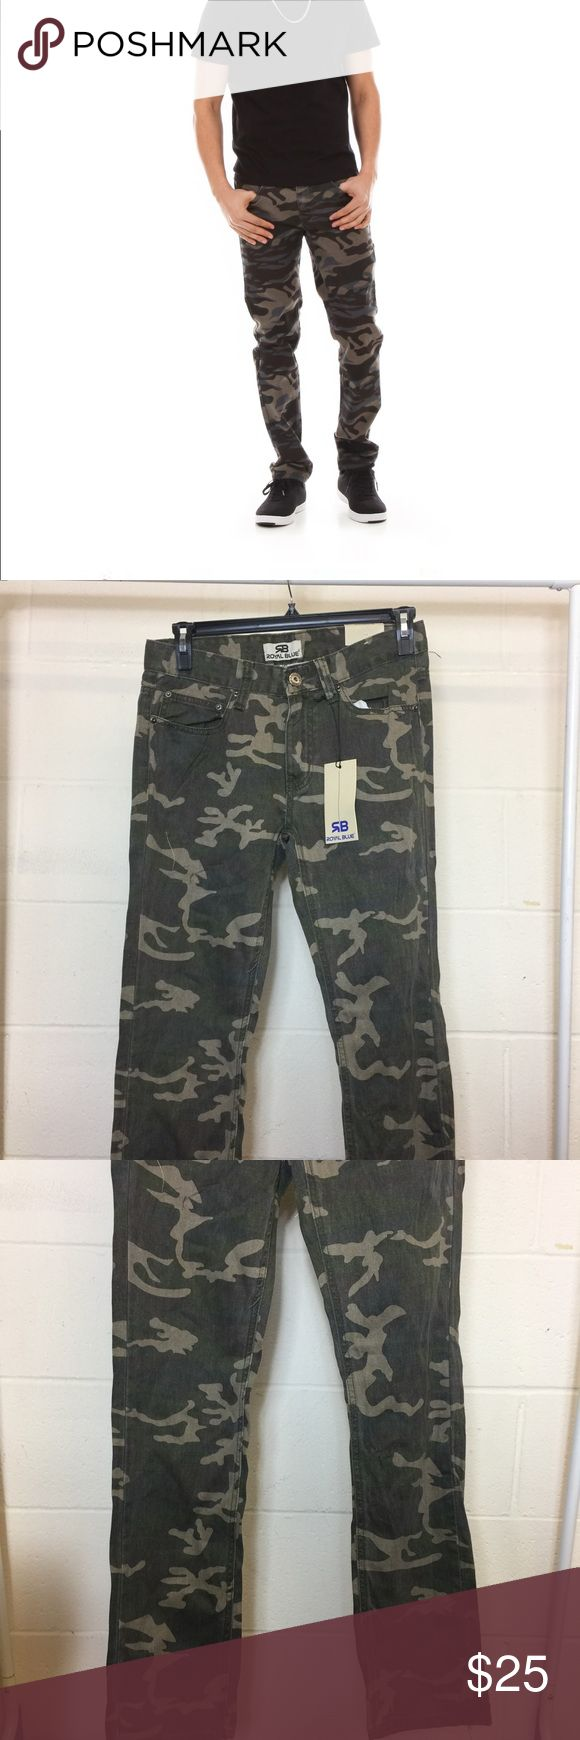 Camouflage Skinny Jeans New Royal Blue brand new skinny jeans. Summer camouflage color, size is 30x32. More detail see pictures. royal blue Jeans Skinny